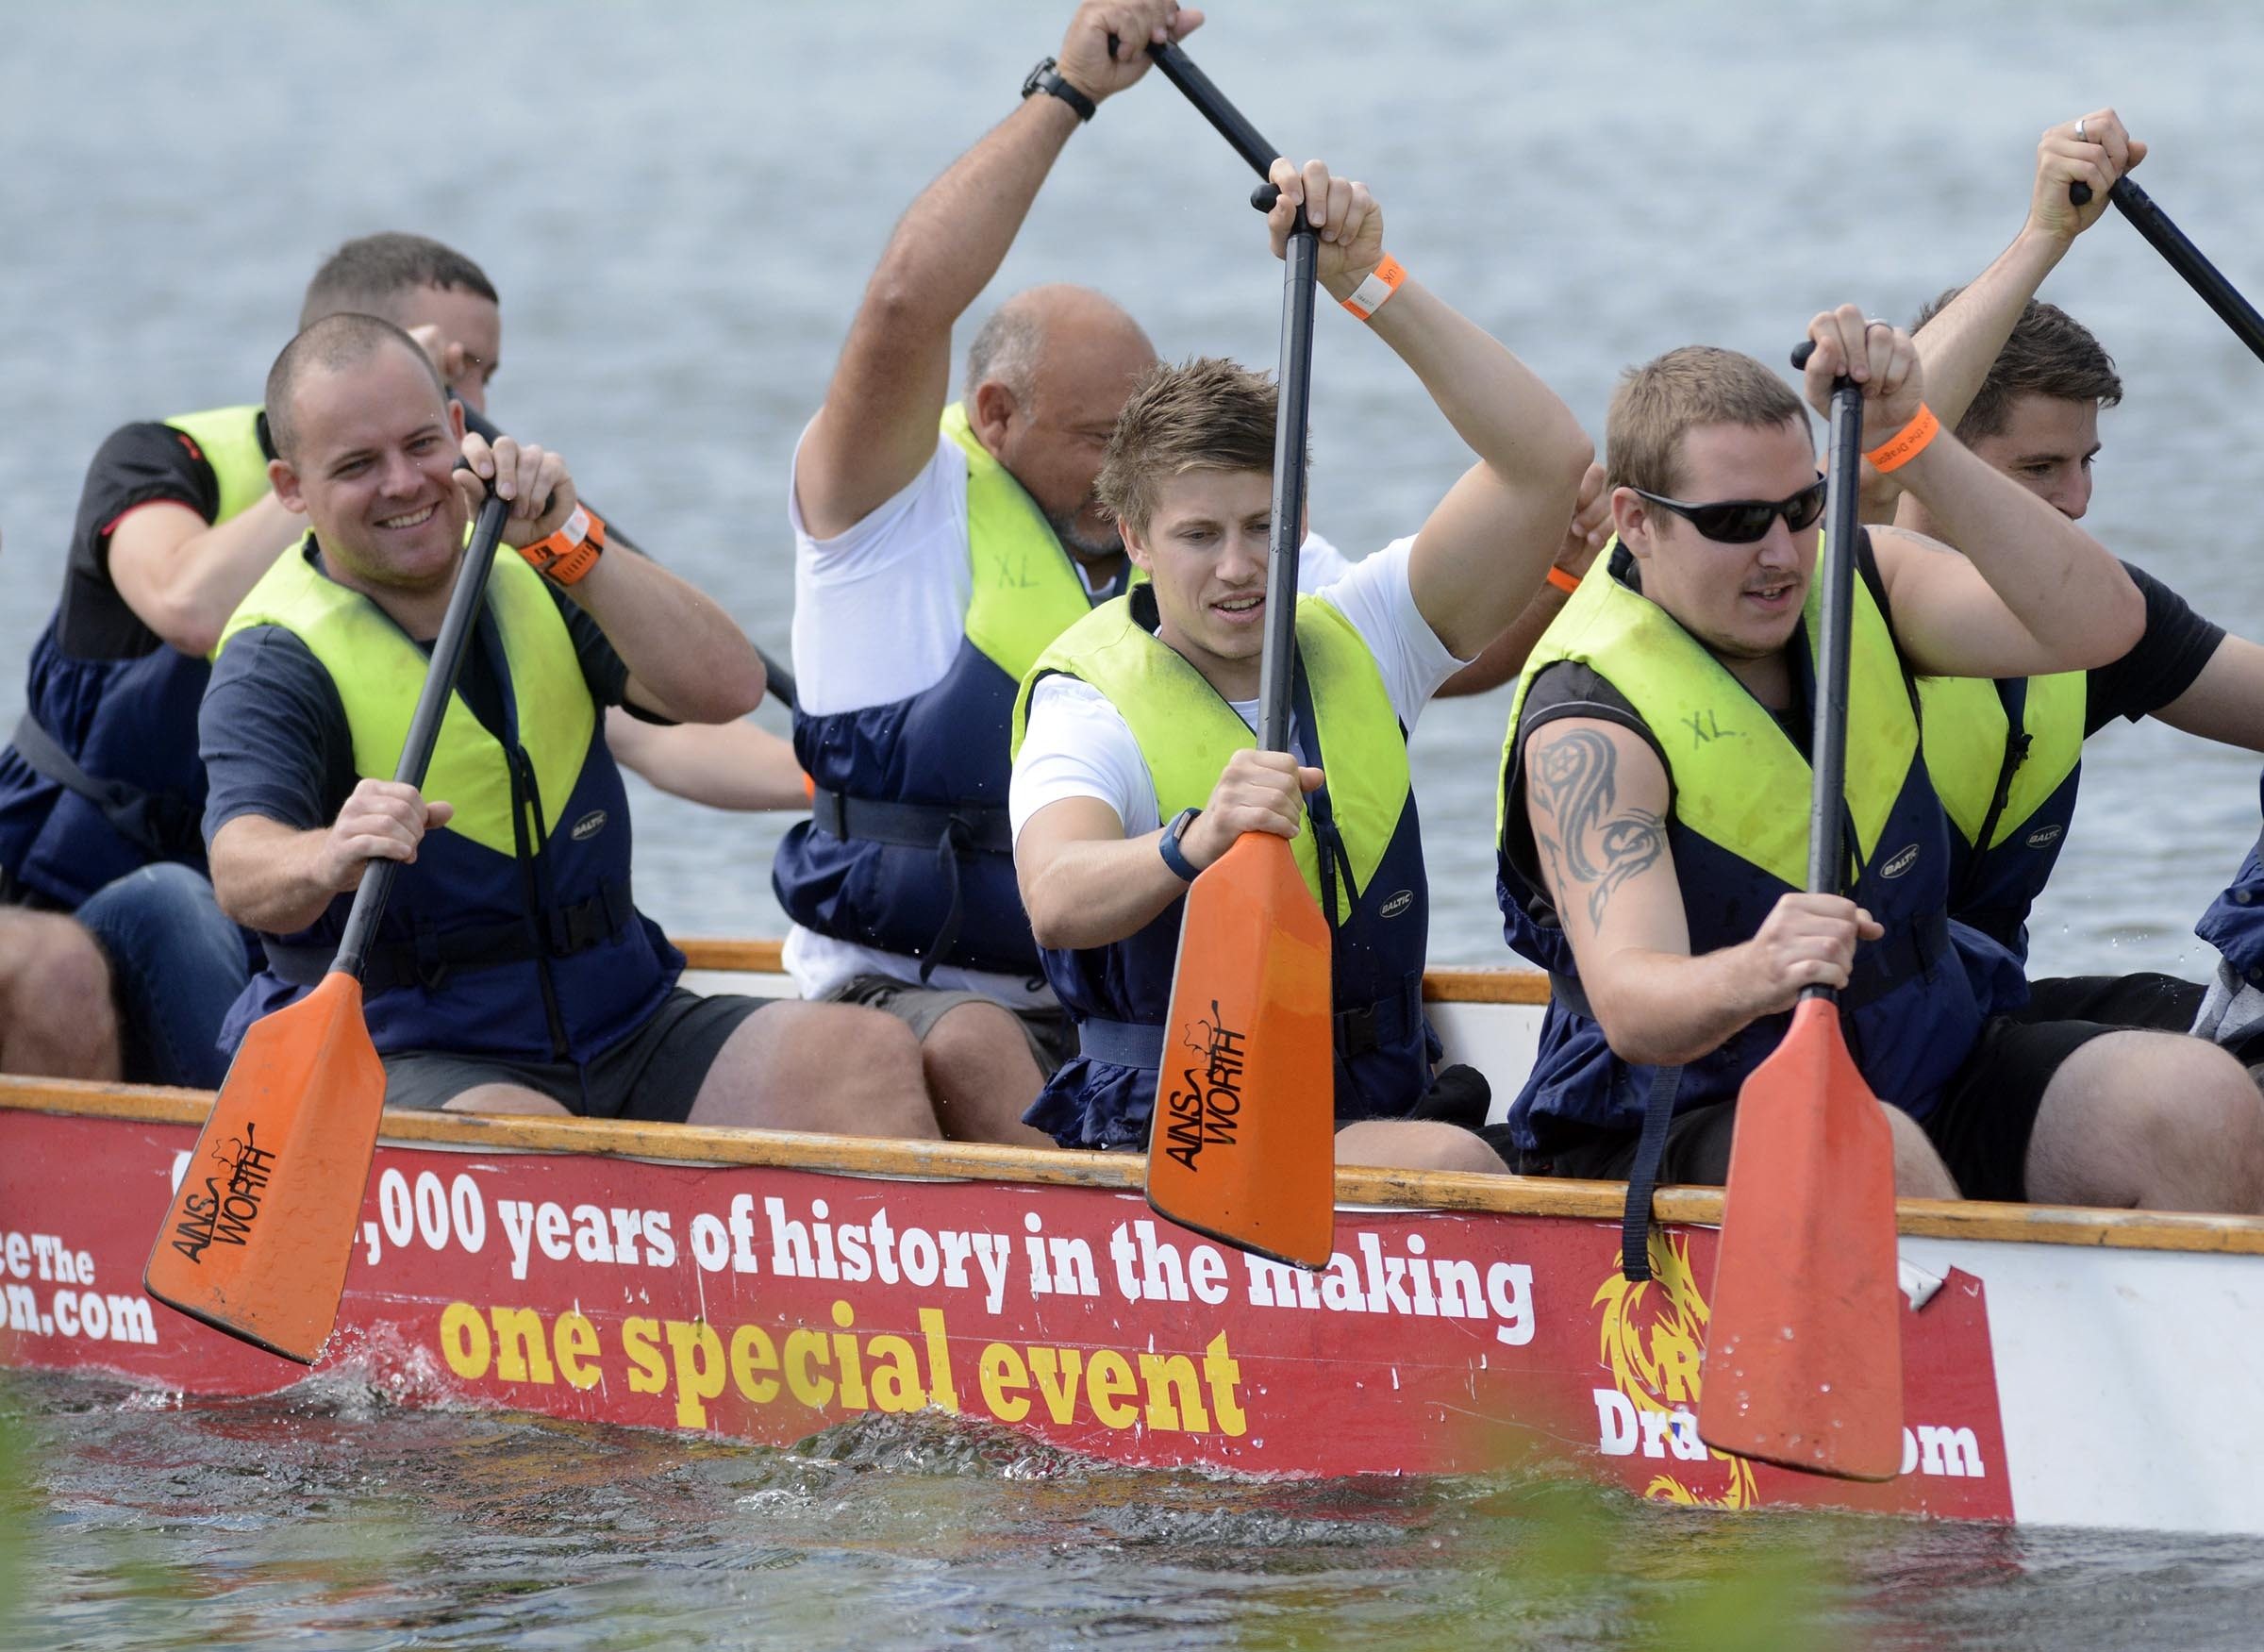 170856 - Dragon Boat racing at Thames Valley Park - pics by Paul Johns.